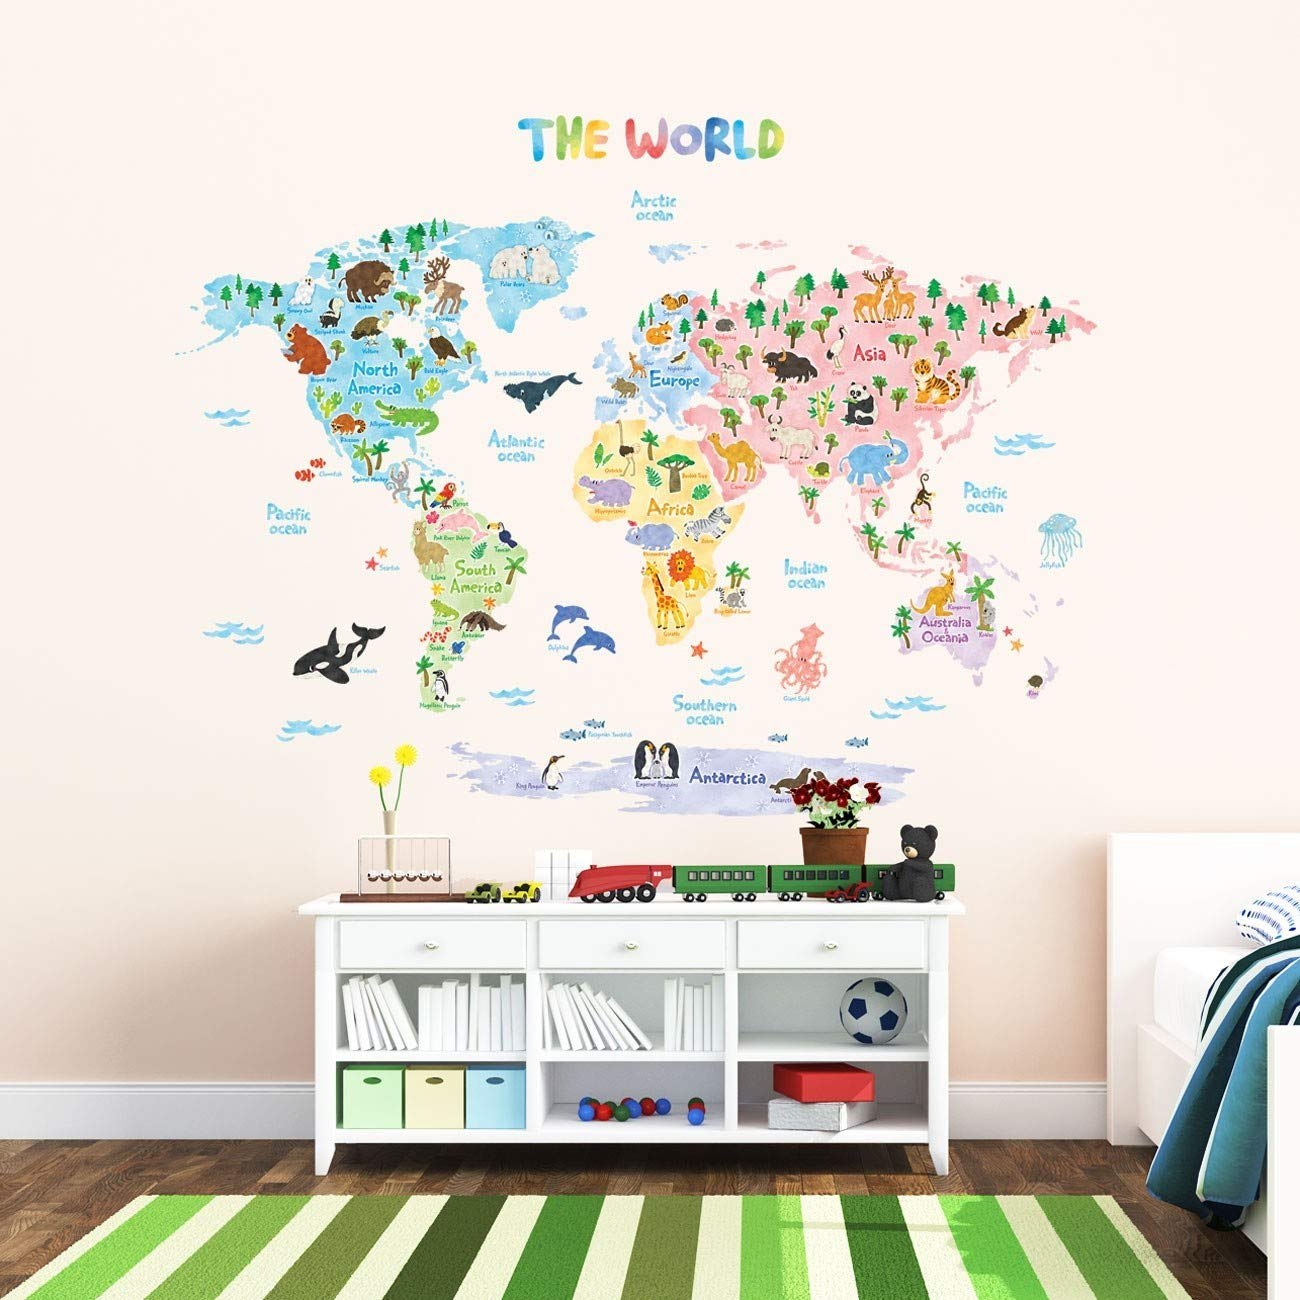 Decowall DLT-1615 Animal World Map Kids Wall Decals Wall Stickers Peel and Stick Removable Wall Stickers for Kids Nursery Bedroom Living Room (XLarge) by Decowall (Image #4)